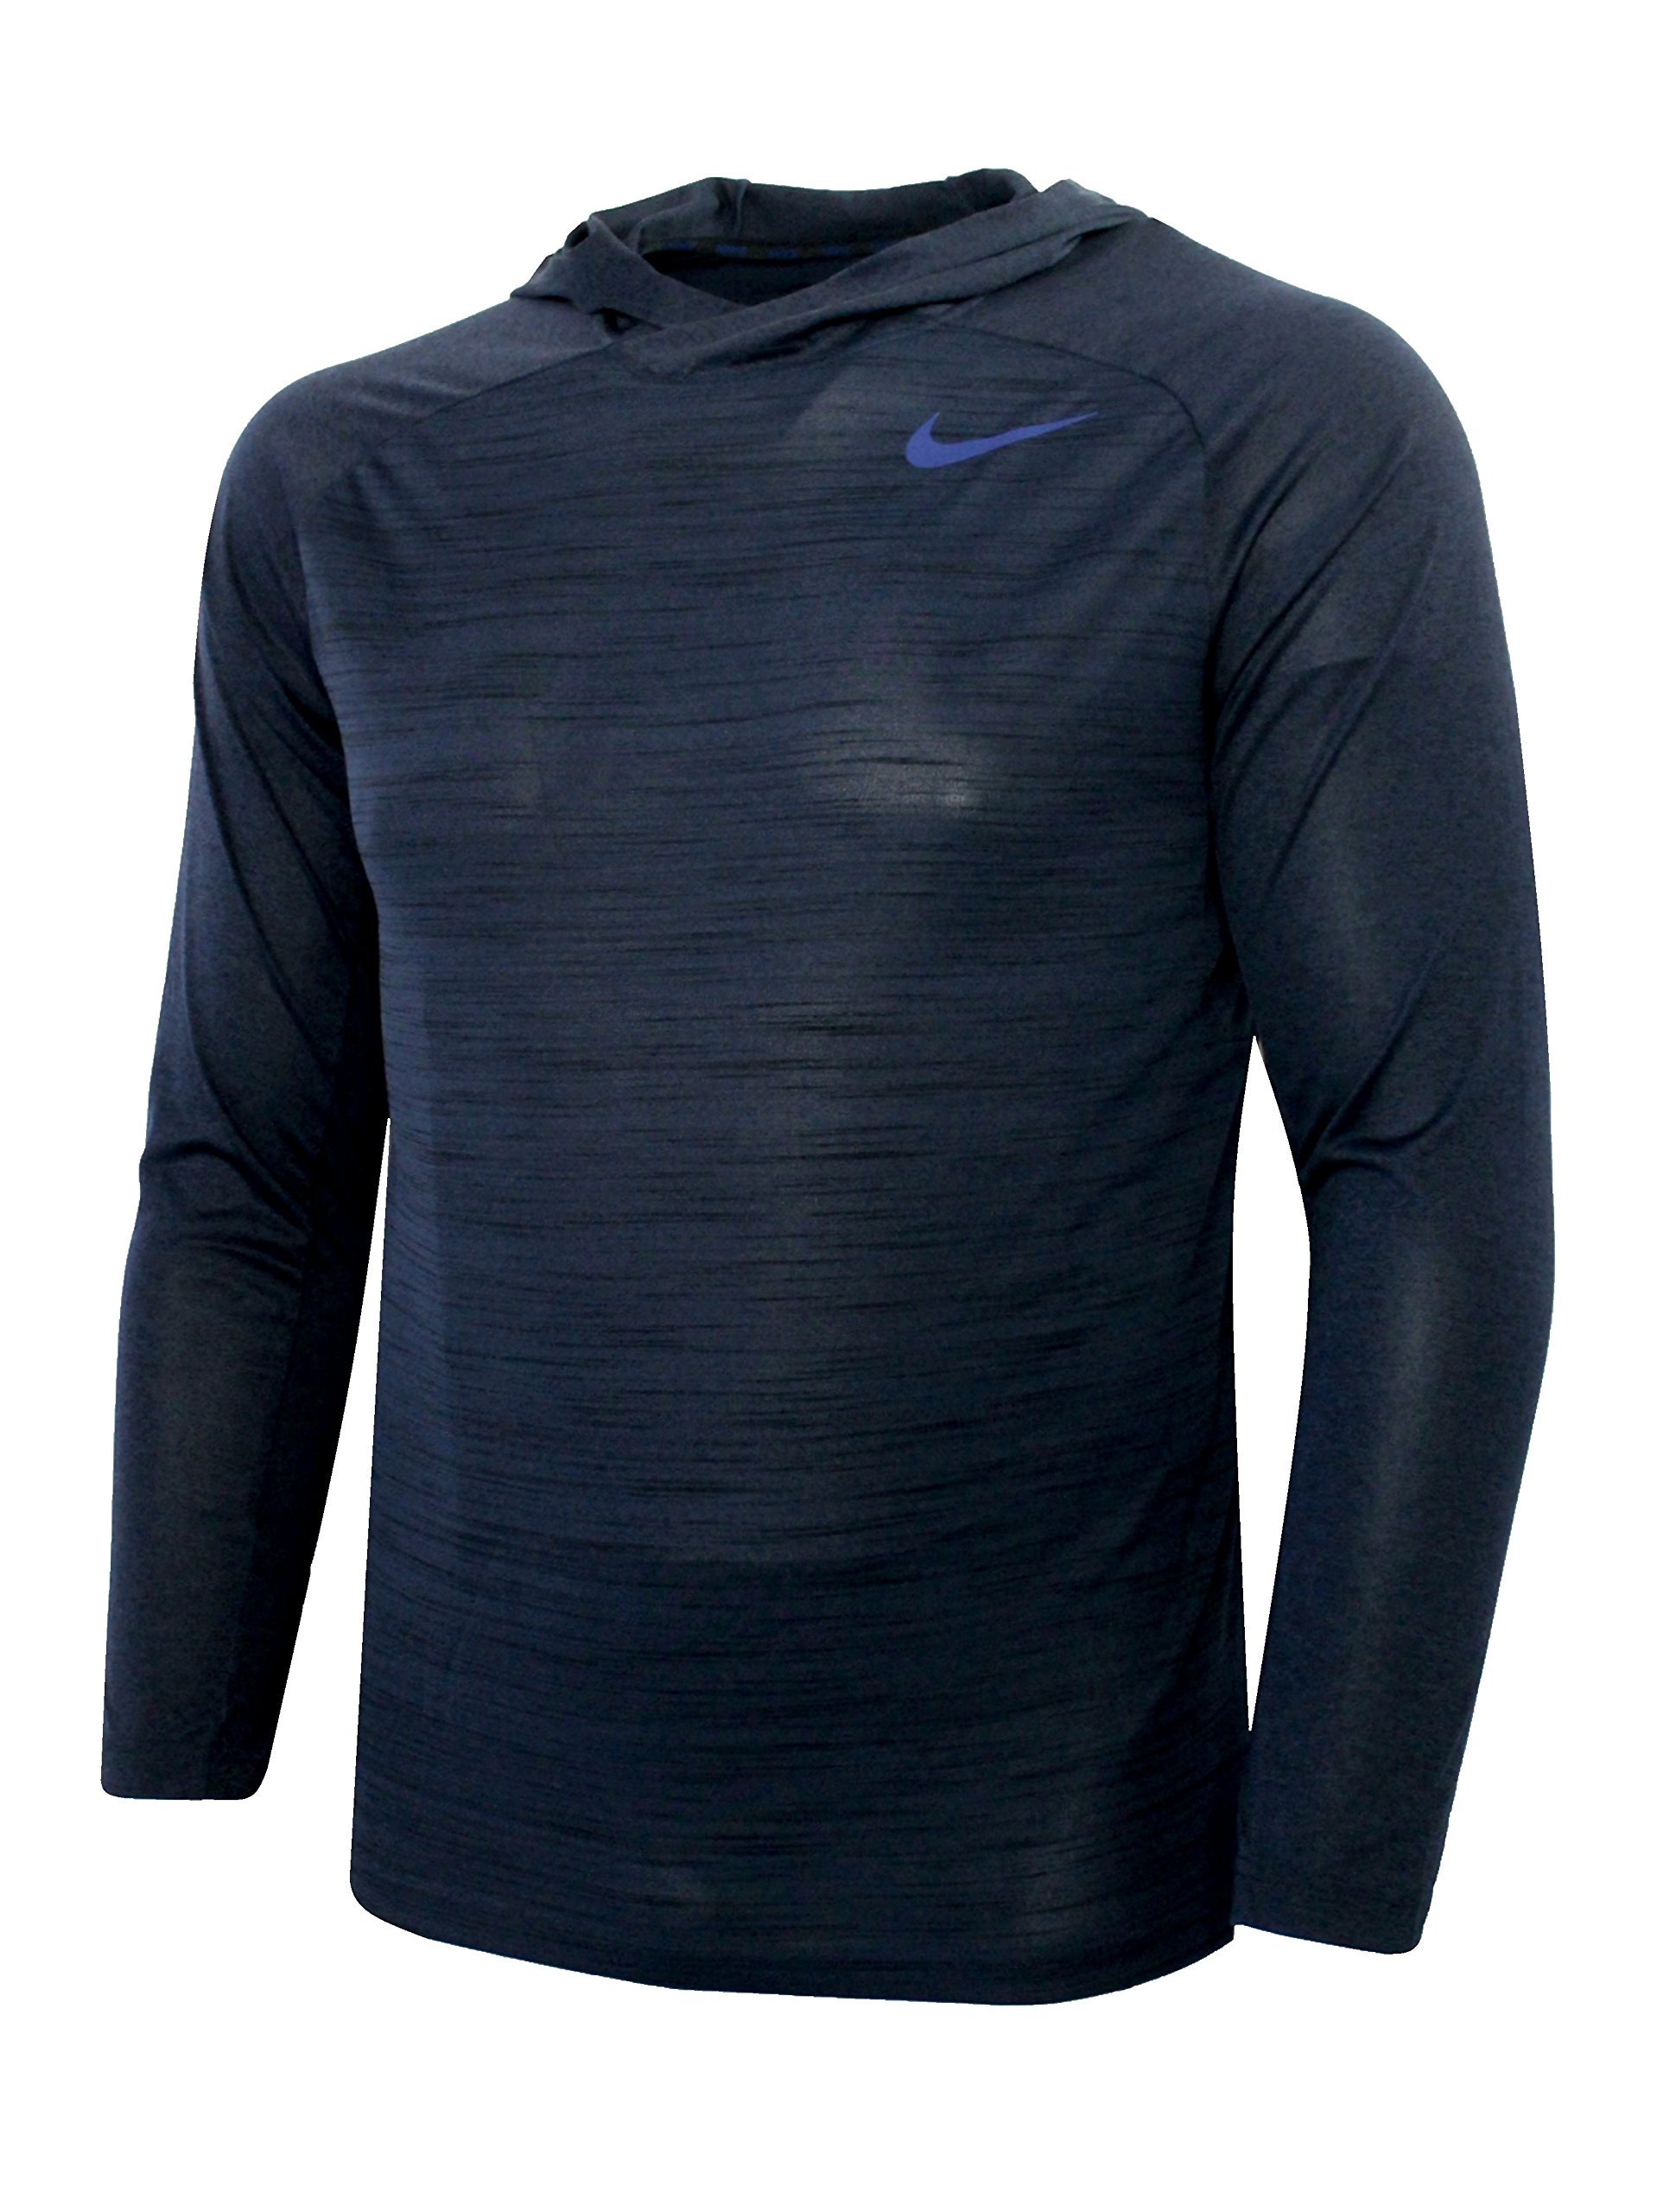 970ecf9d1d1d Galleon - Nike Mens Dri-fit Touch Long Sleeve Training Hoodie Navy (LARGE)